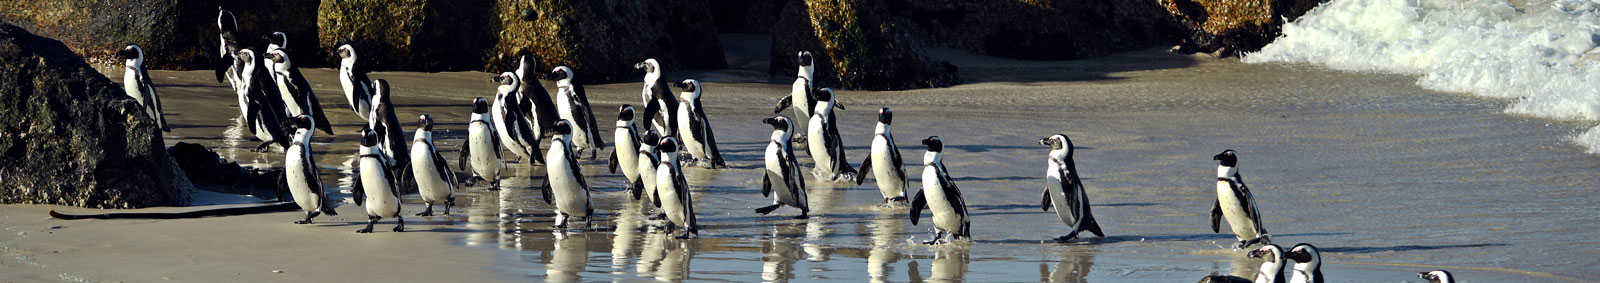 South African penguins at Boulders beach